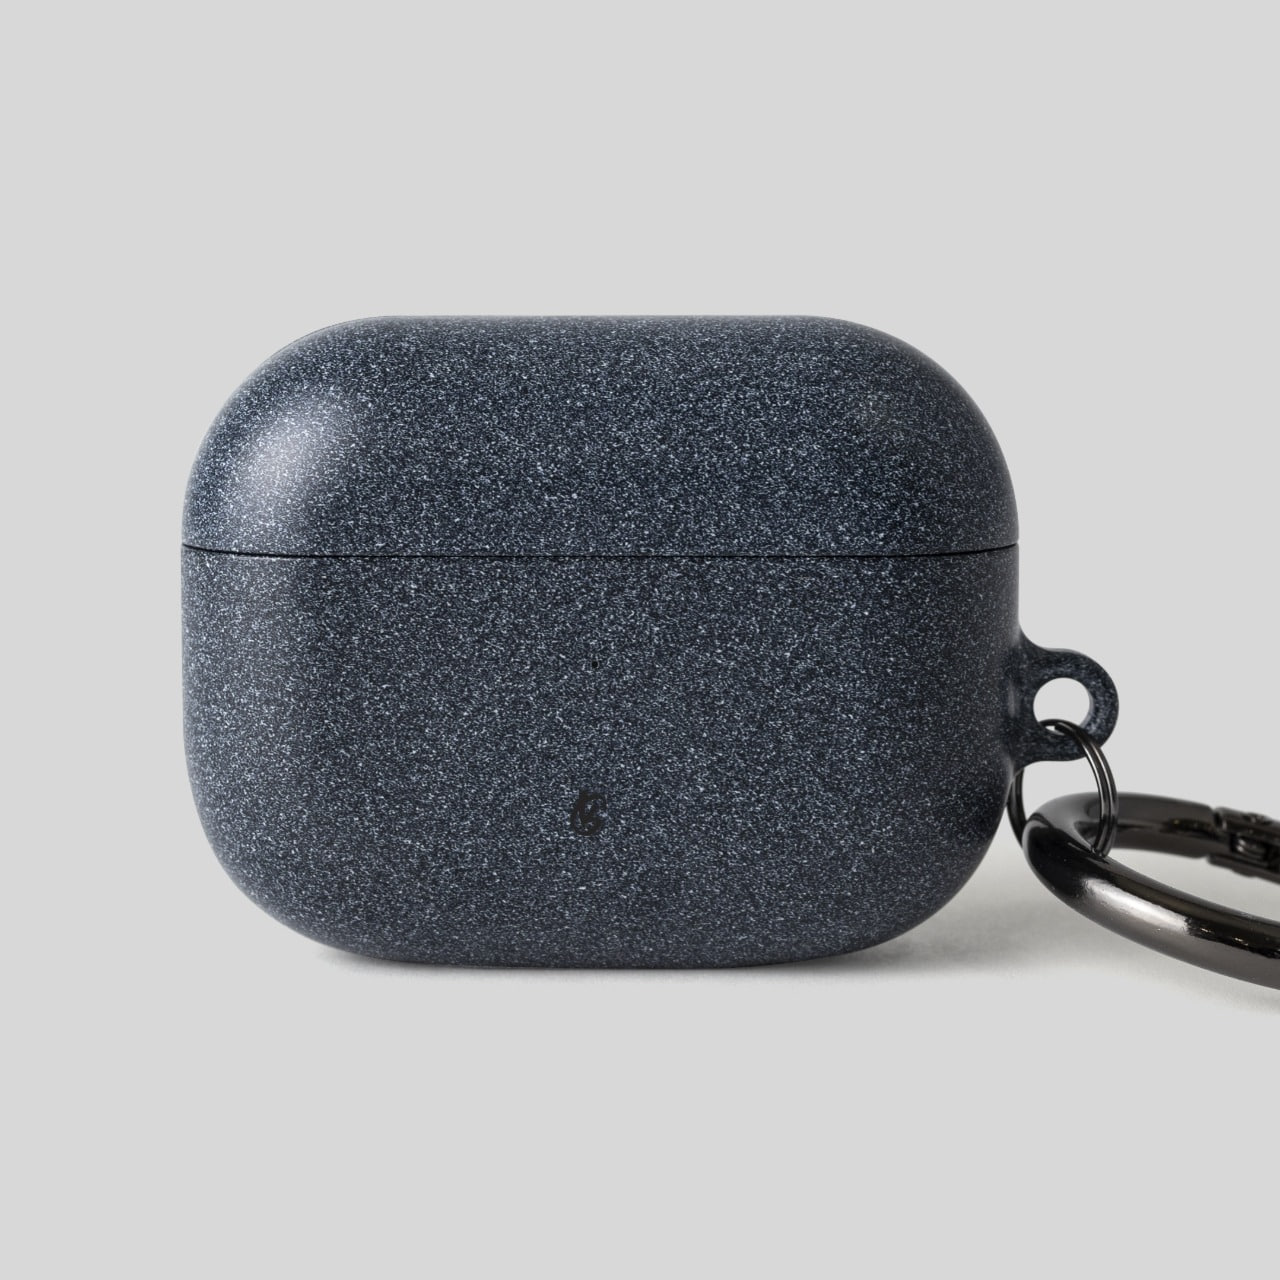 [Airpods cases] Noise No.15